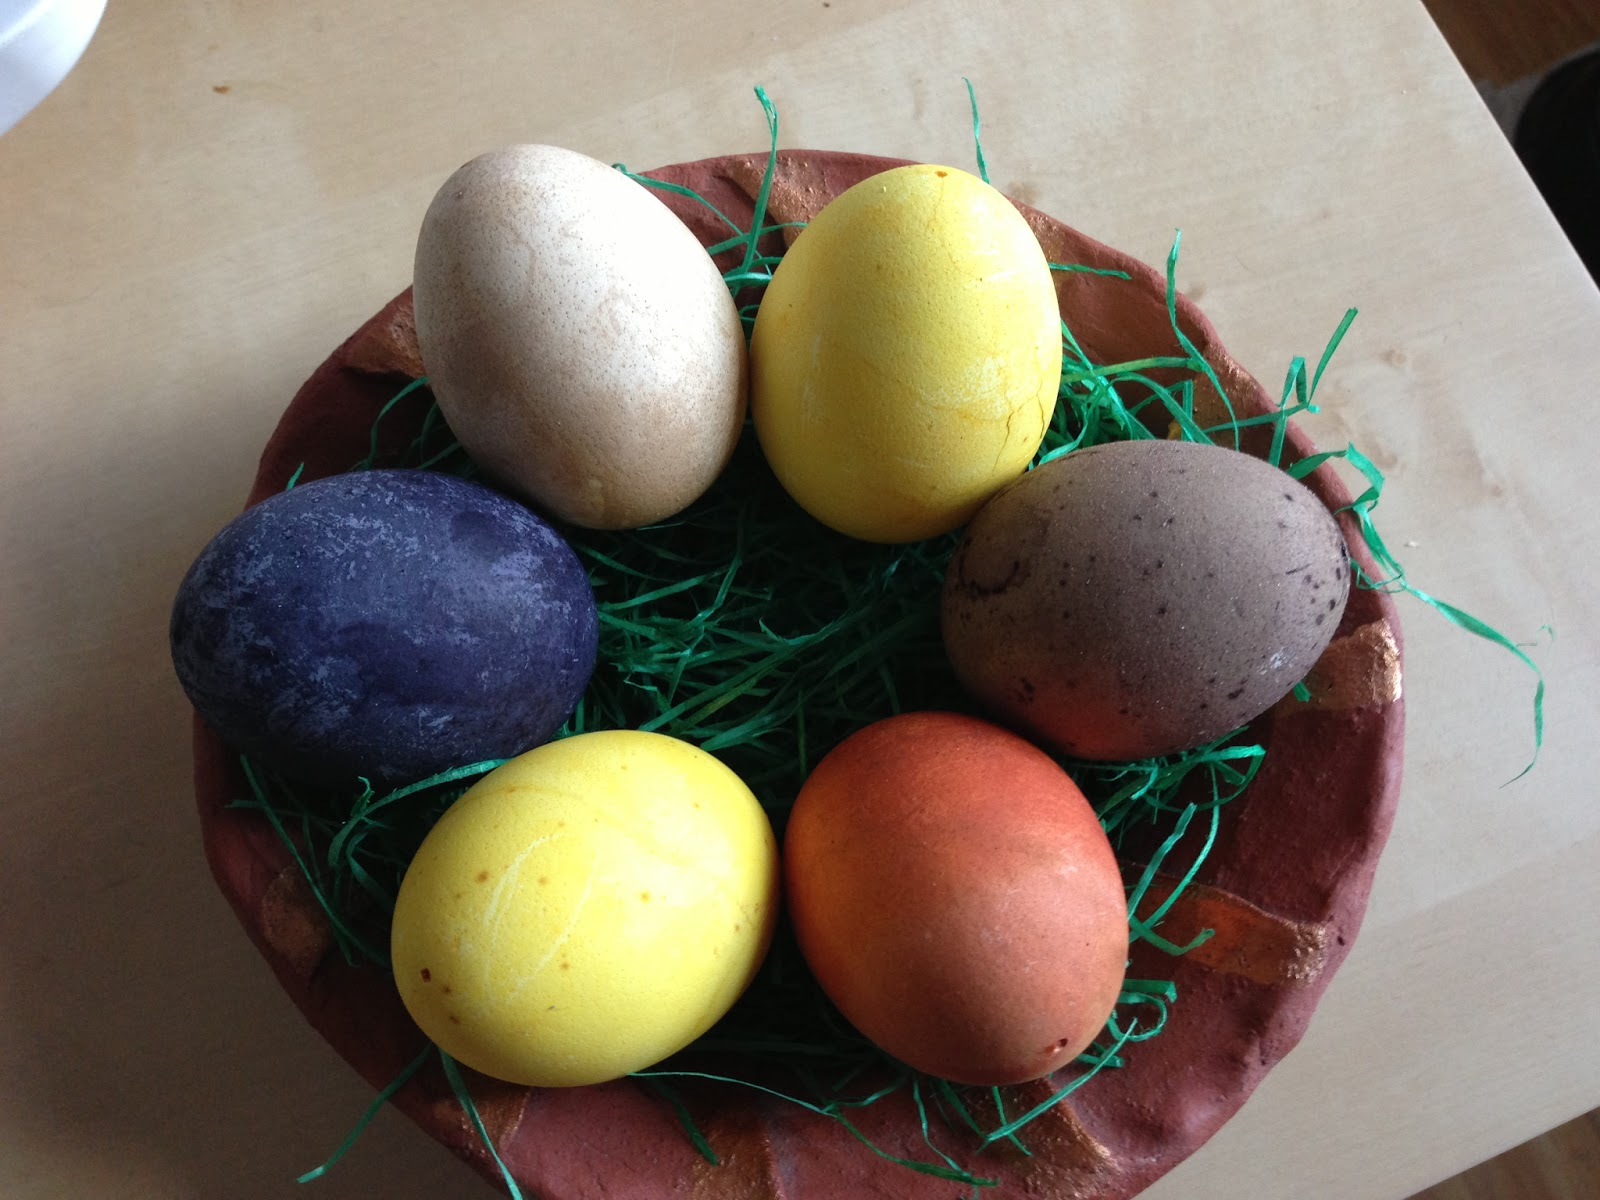 Eggs dyeing in natural color . Clockwise from the top right we have turmeric (yellow), red wine (purple-ish), onion skin (brick red), another turmeric, blue berry (dark blue), and last and kind of least: paprika powder.